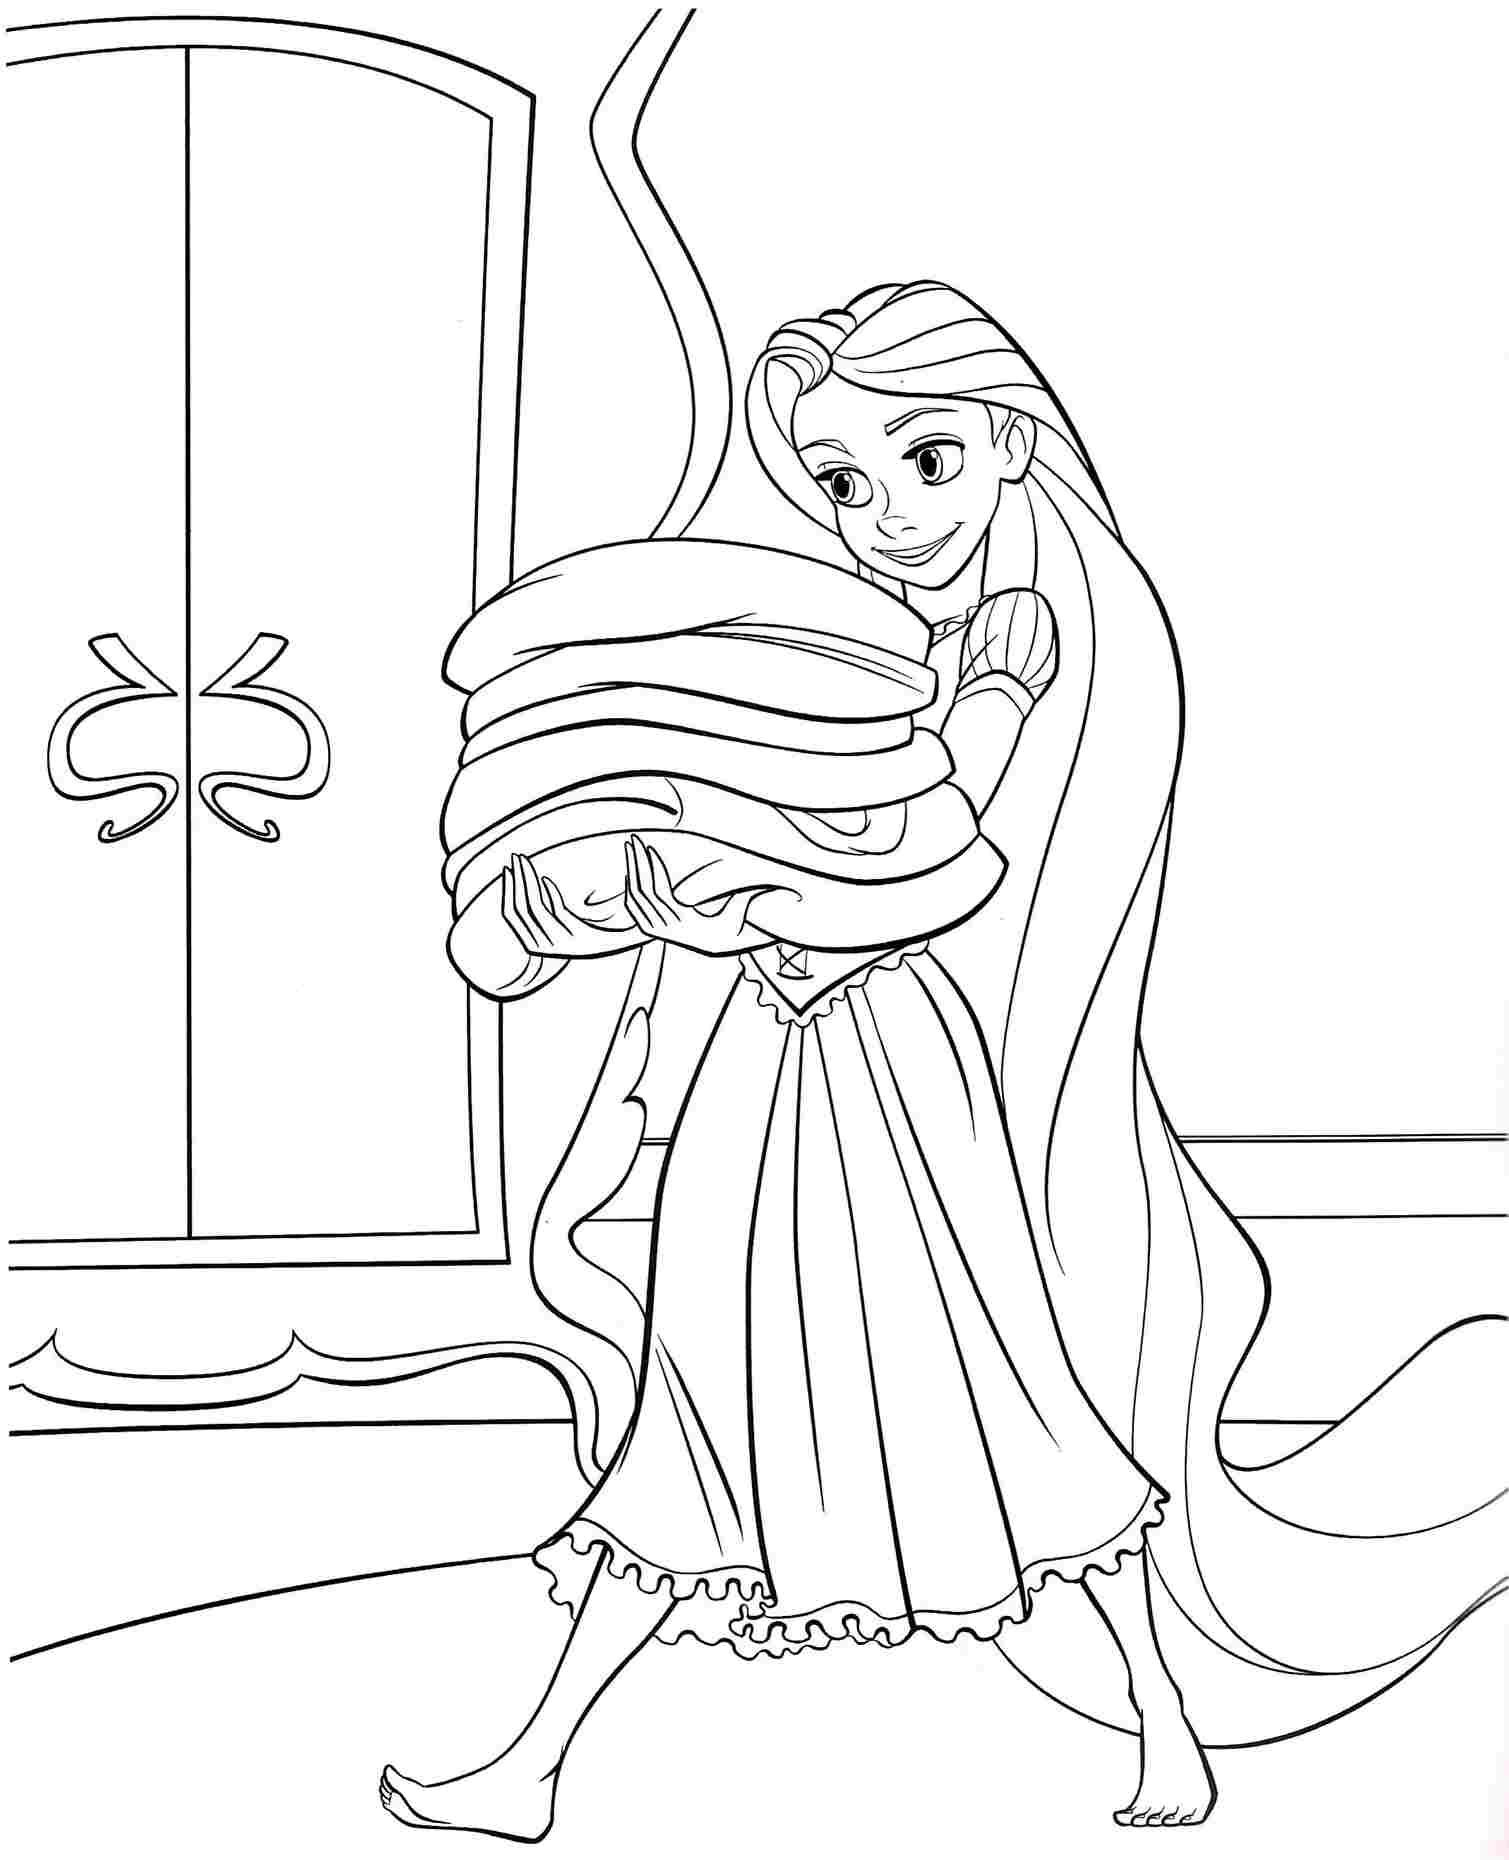 Coloring pages disney princess tangled rapunzel free for for Disney princess rapunzel coloring pages